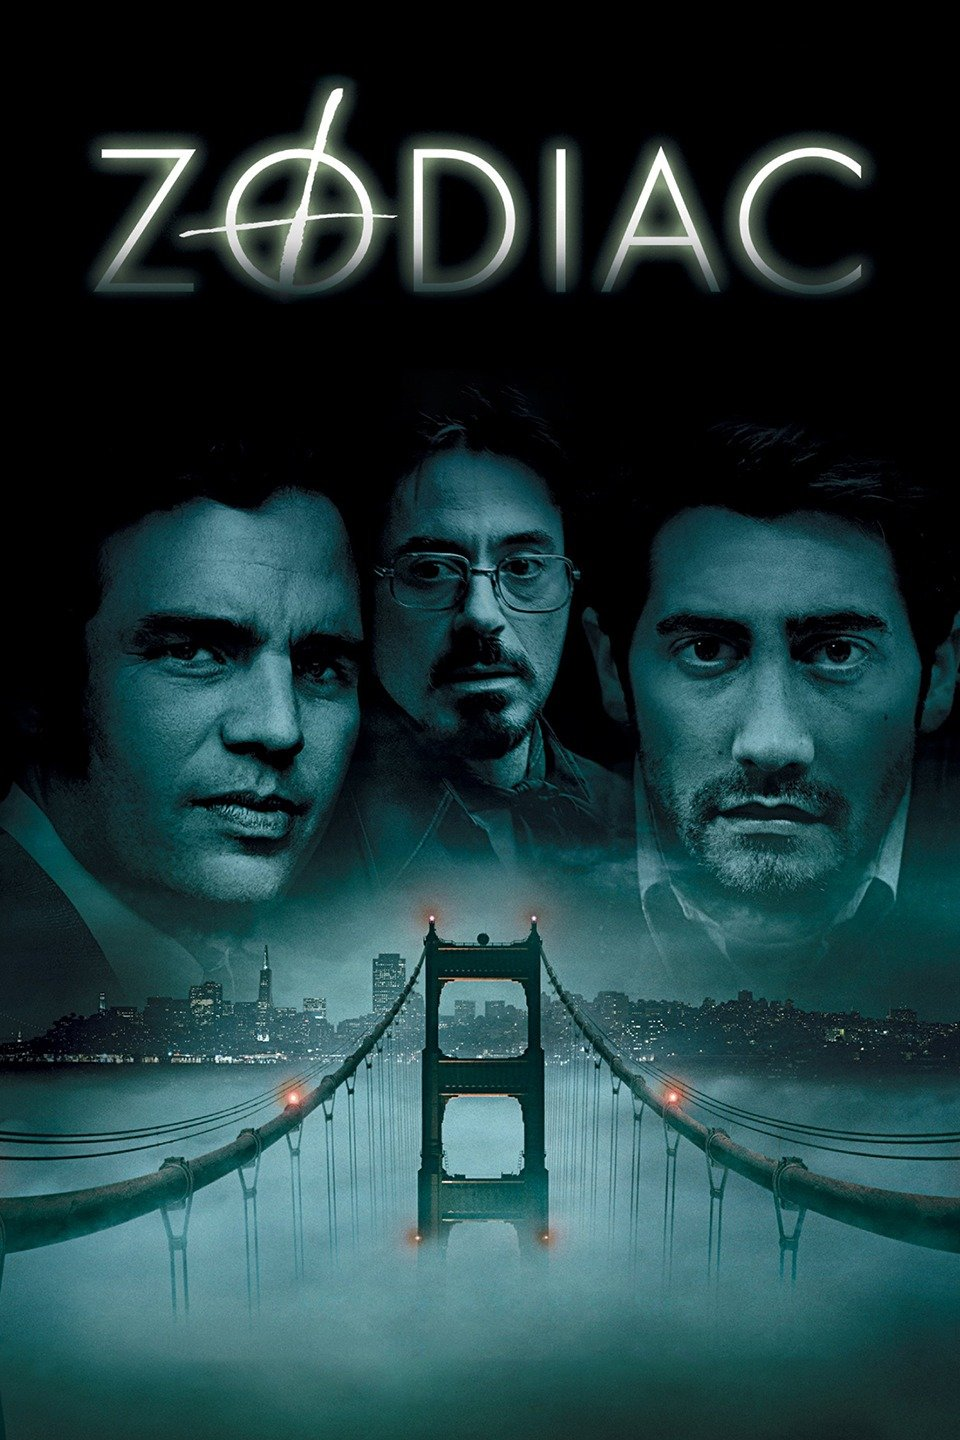 — ZODIAC   In the late 1960s and 1970s, fear grips the city of San Francisco as a serial killer called Zodiac stalks its residents. Investigators (Mark Ruffalo, Anthony Edwards) and reporters (Jake Gyllenhaal, Robert Downey Jr.) become obsessed with learning the killer's identity and bringing him to justice. Meanwhile, Zodiac claims victim after victim and taunts the authorities with cryptic messages, cyphers and menacing phone calls.